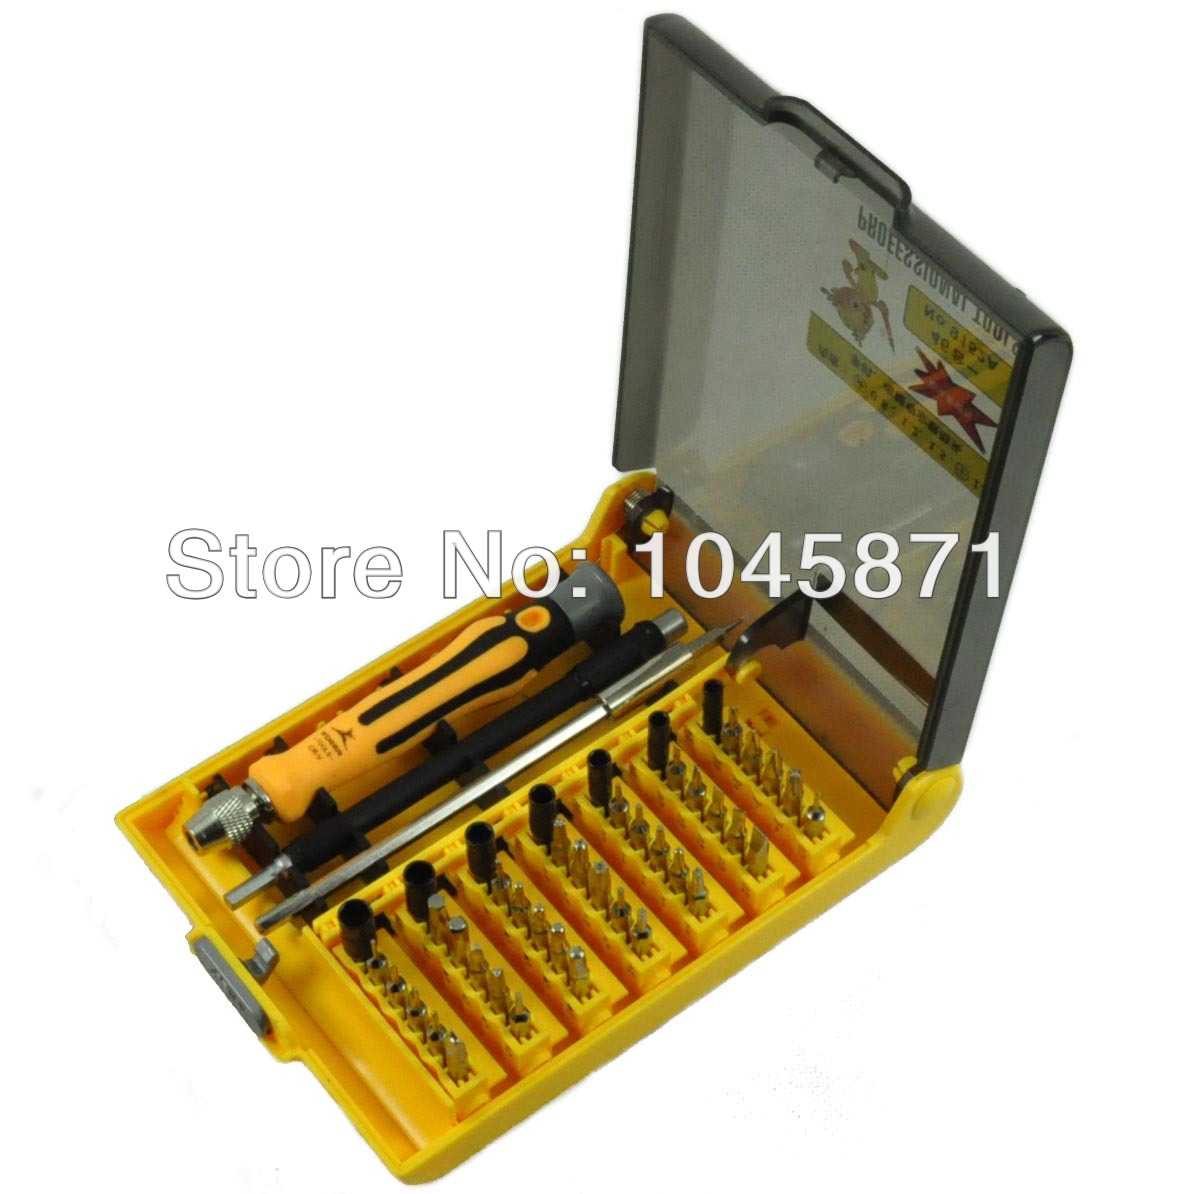 T003 New 45 in 1 Precision Cell Phone Mobile Repair ScrewDriver Profession Tool Set FREE SHIPPING